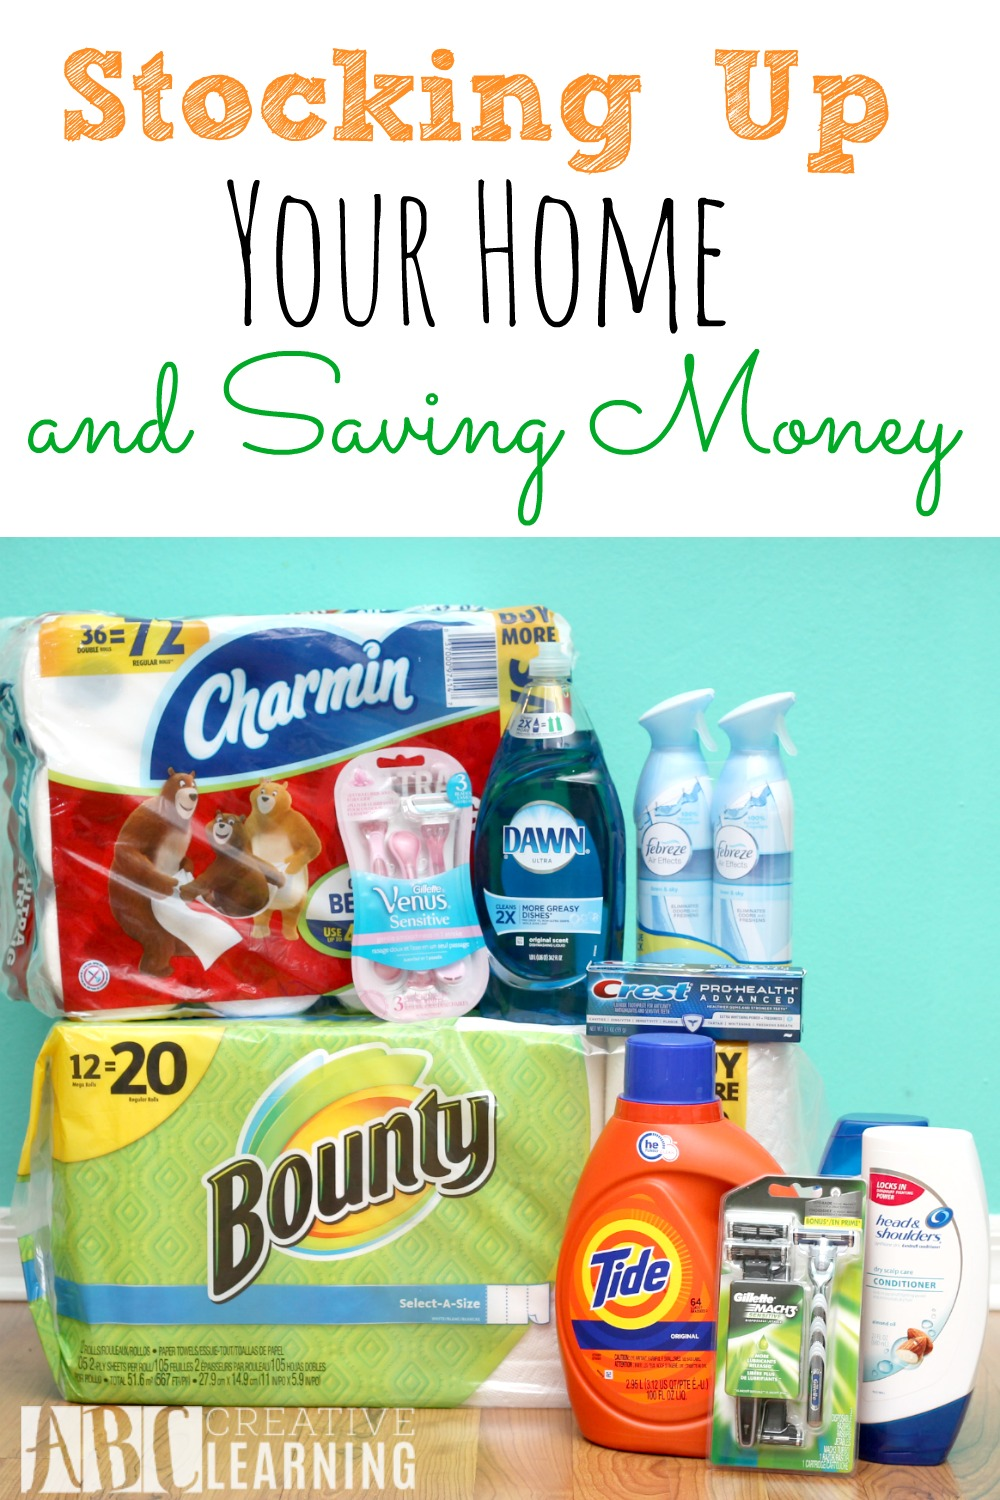 Stocking Up Your Home and Saving Money